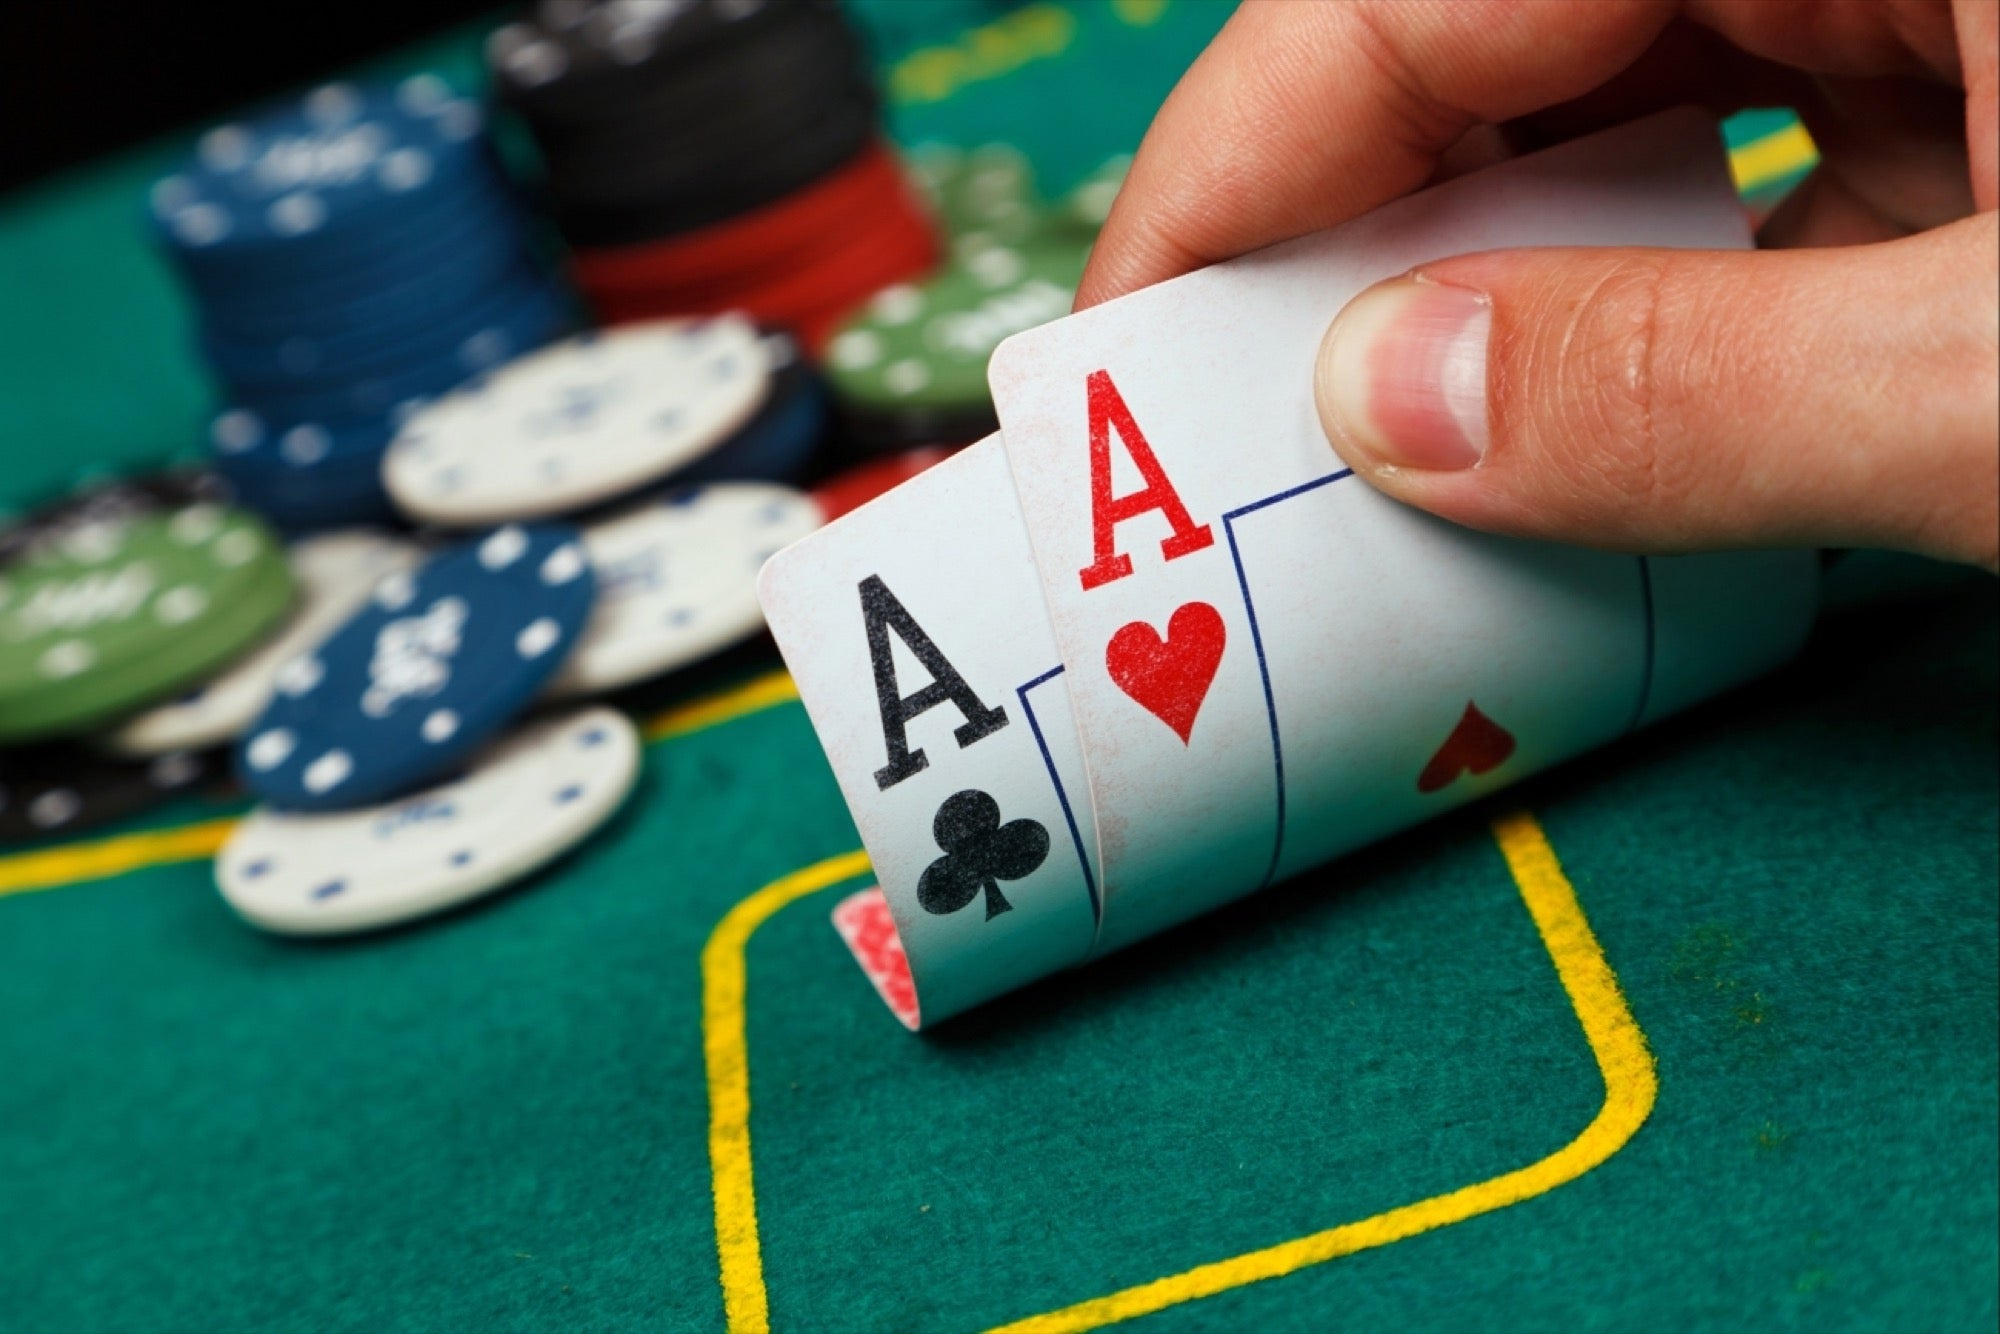 Tips for using online casinos